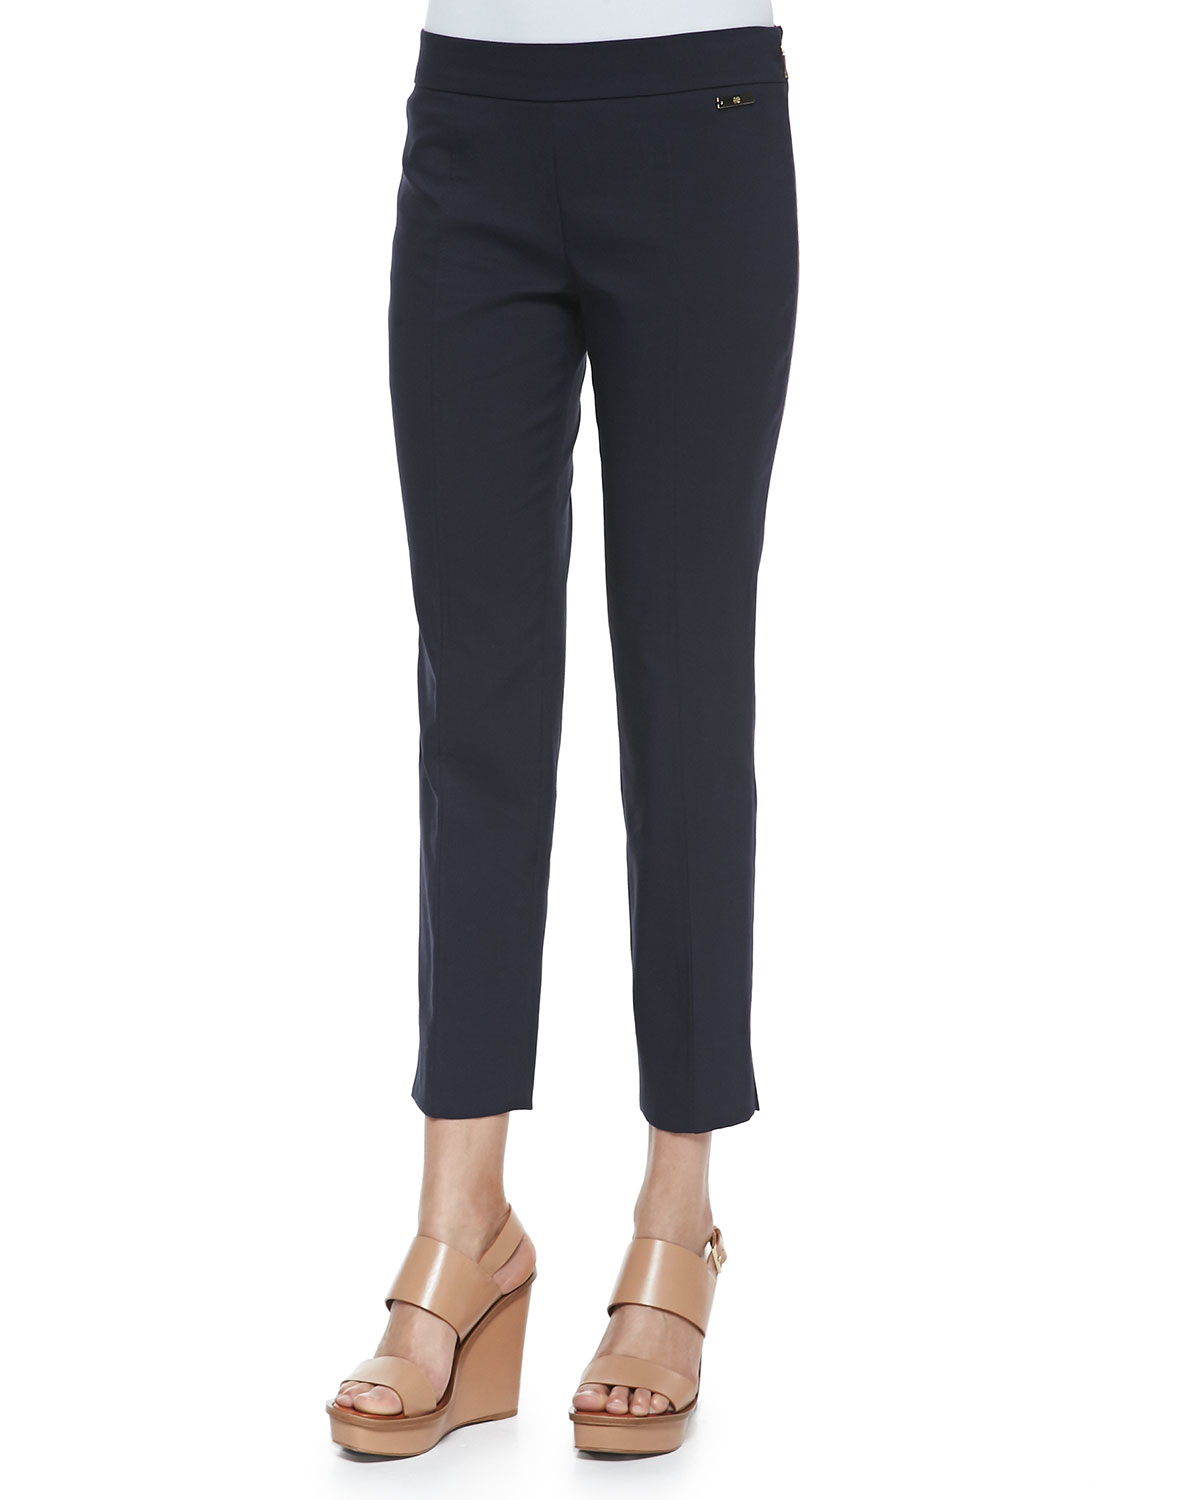 Our skinny ankle pants come in tons of fun colors and patterns. If you want to show off your bold personality, opt for our red or pink colored pants with a blouse and statement necklace to complete the look. Our neutral colored skinny ankle pants are perfect for more formal meetings in the office.